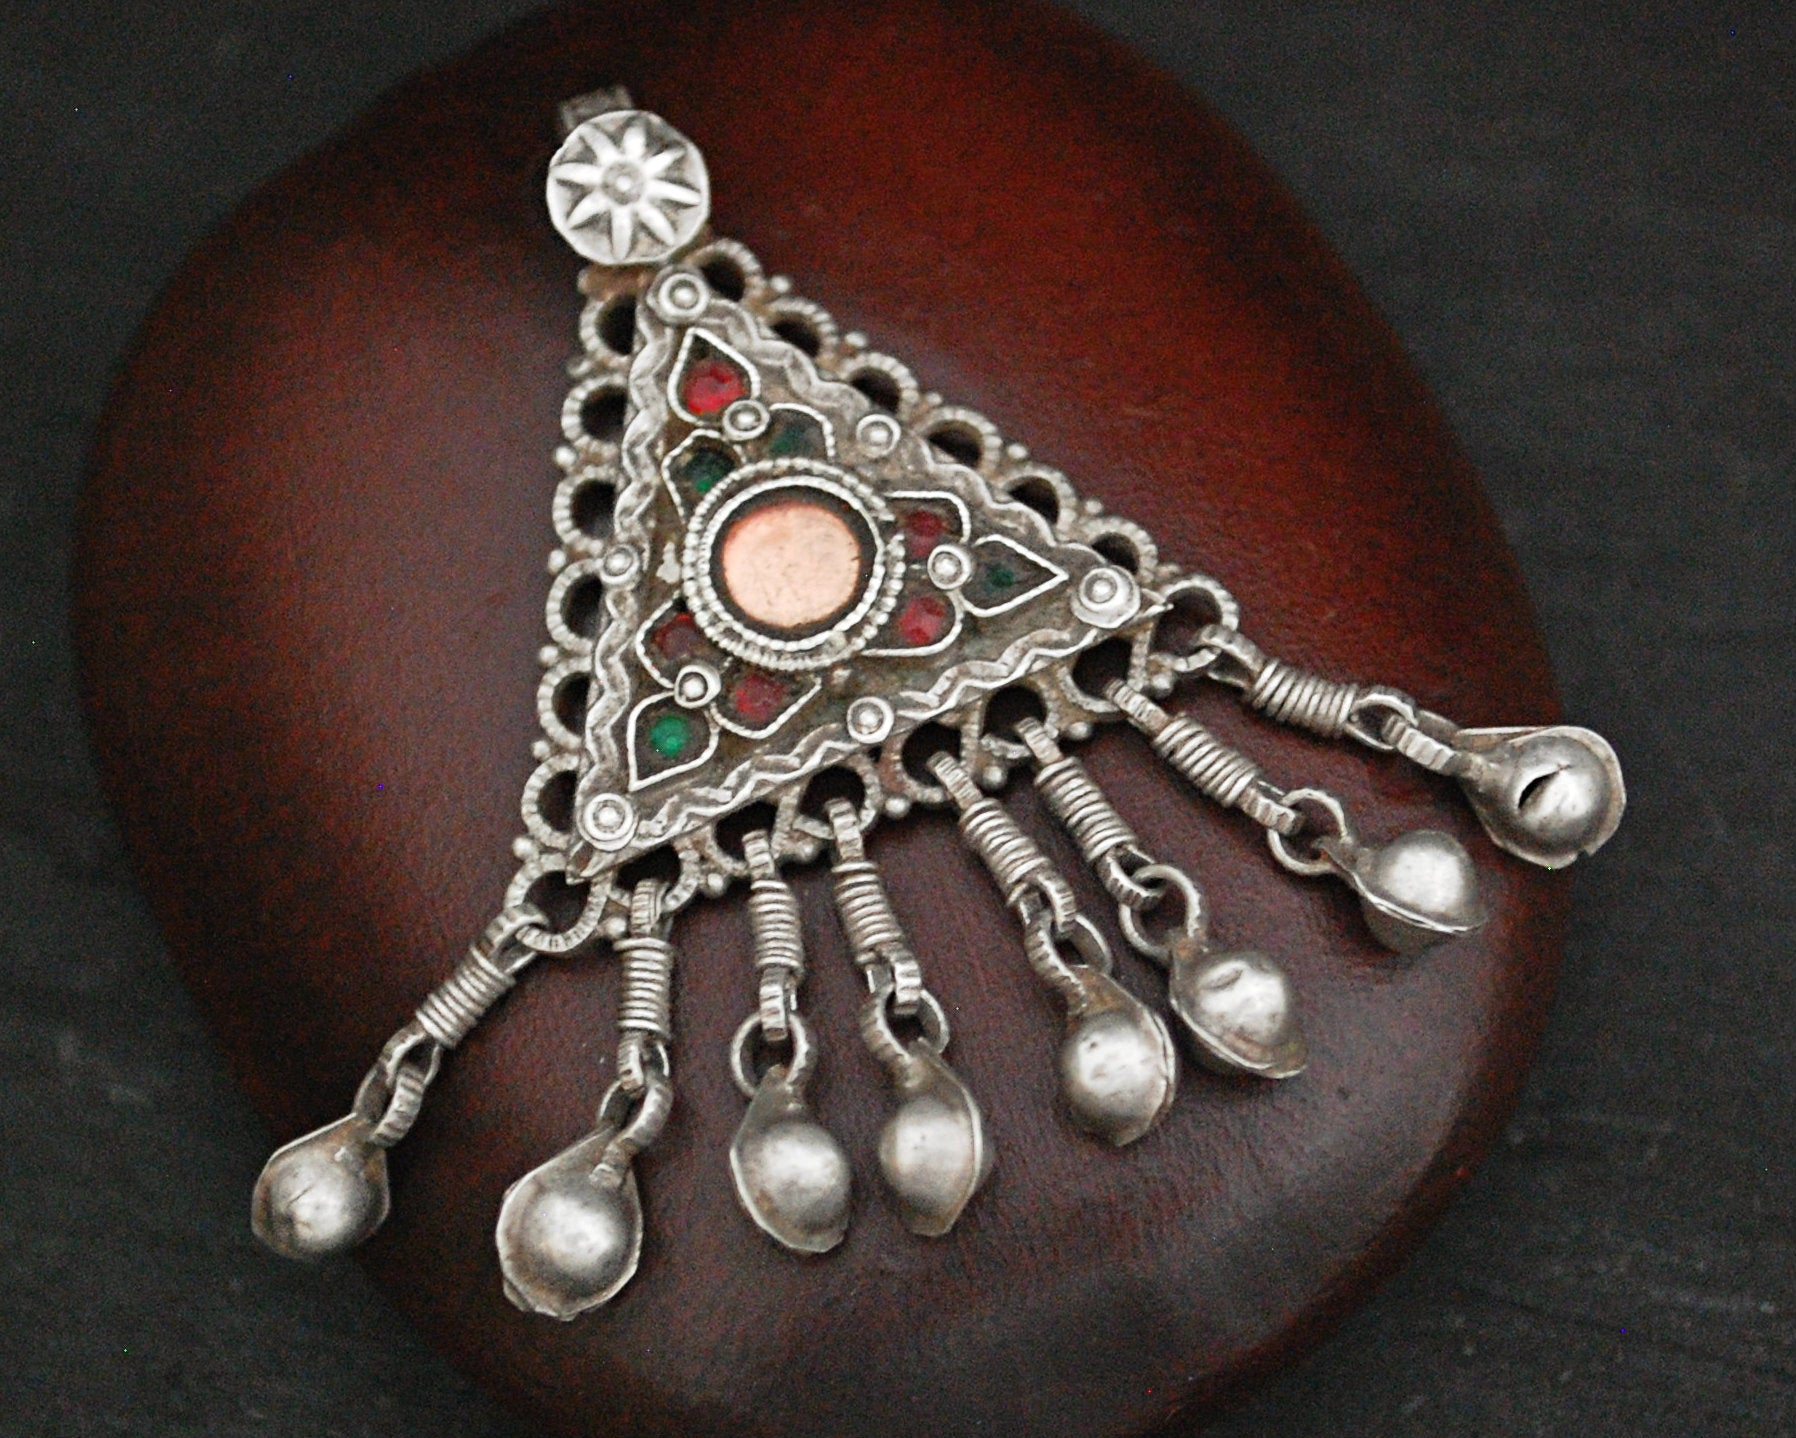 Antique Afghani Silver Pendant with Bell Tassels